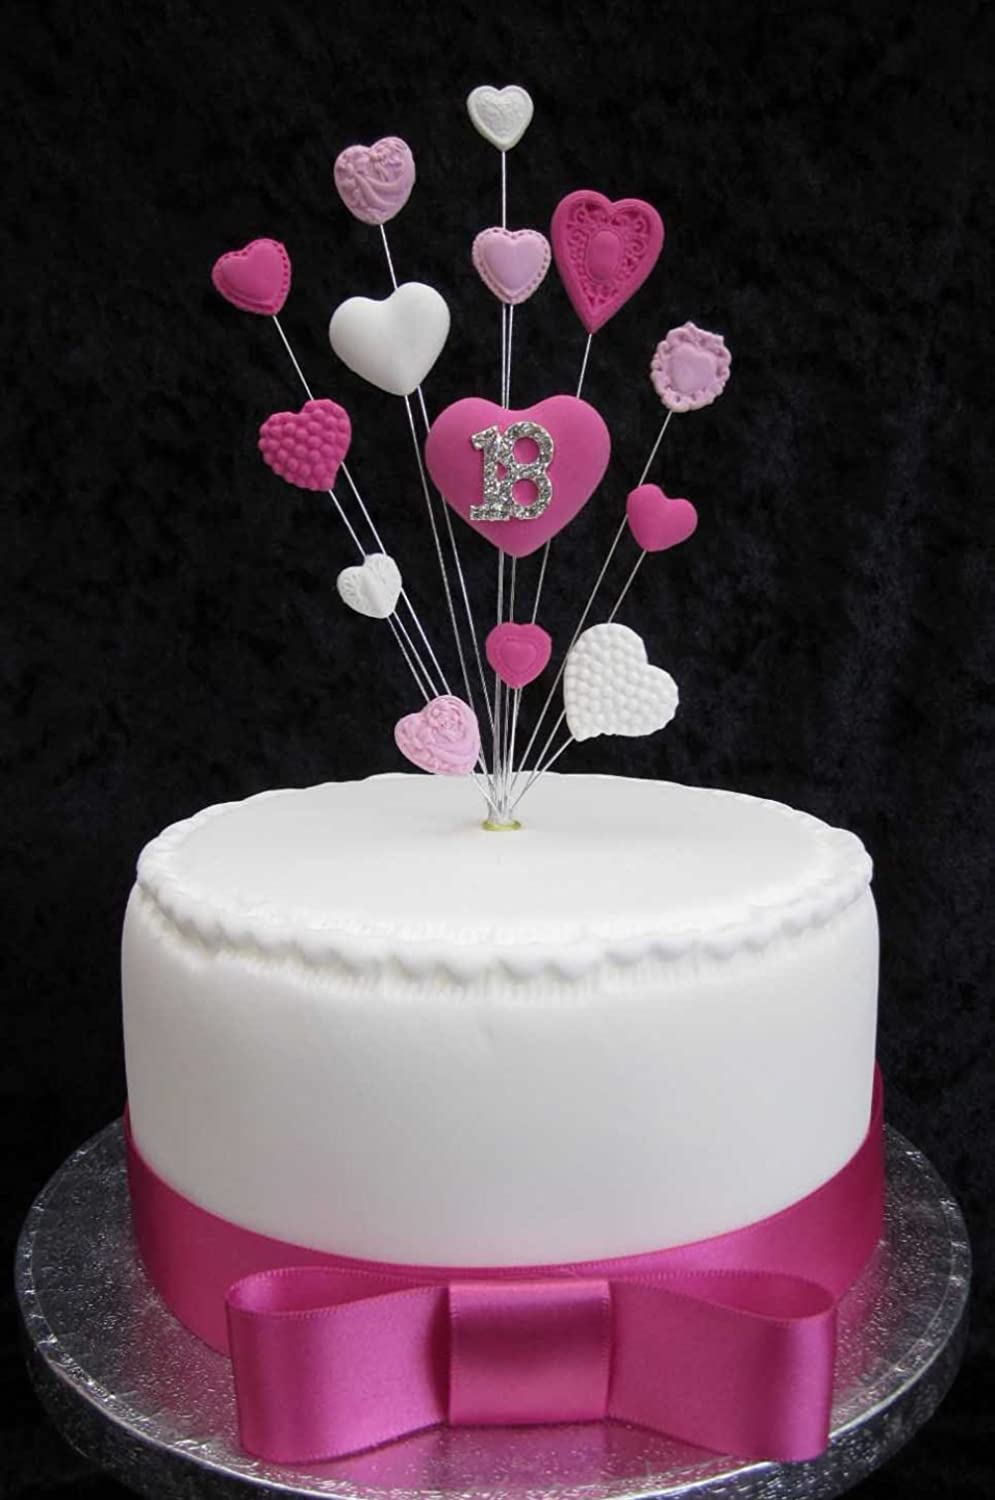 18th Birthday Cake Topper Pinks And White Hearts Suitable For A